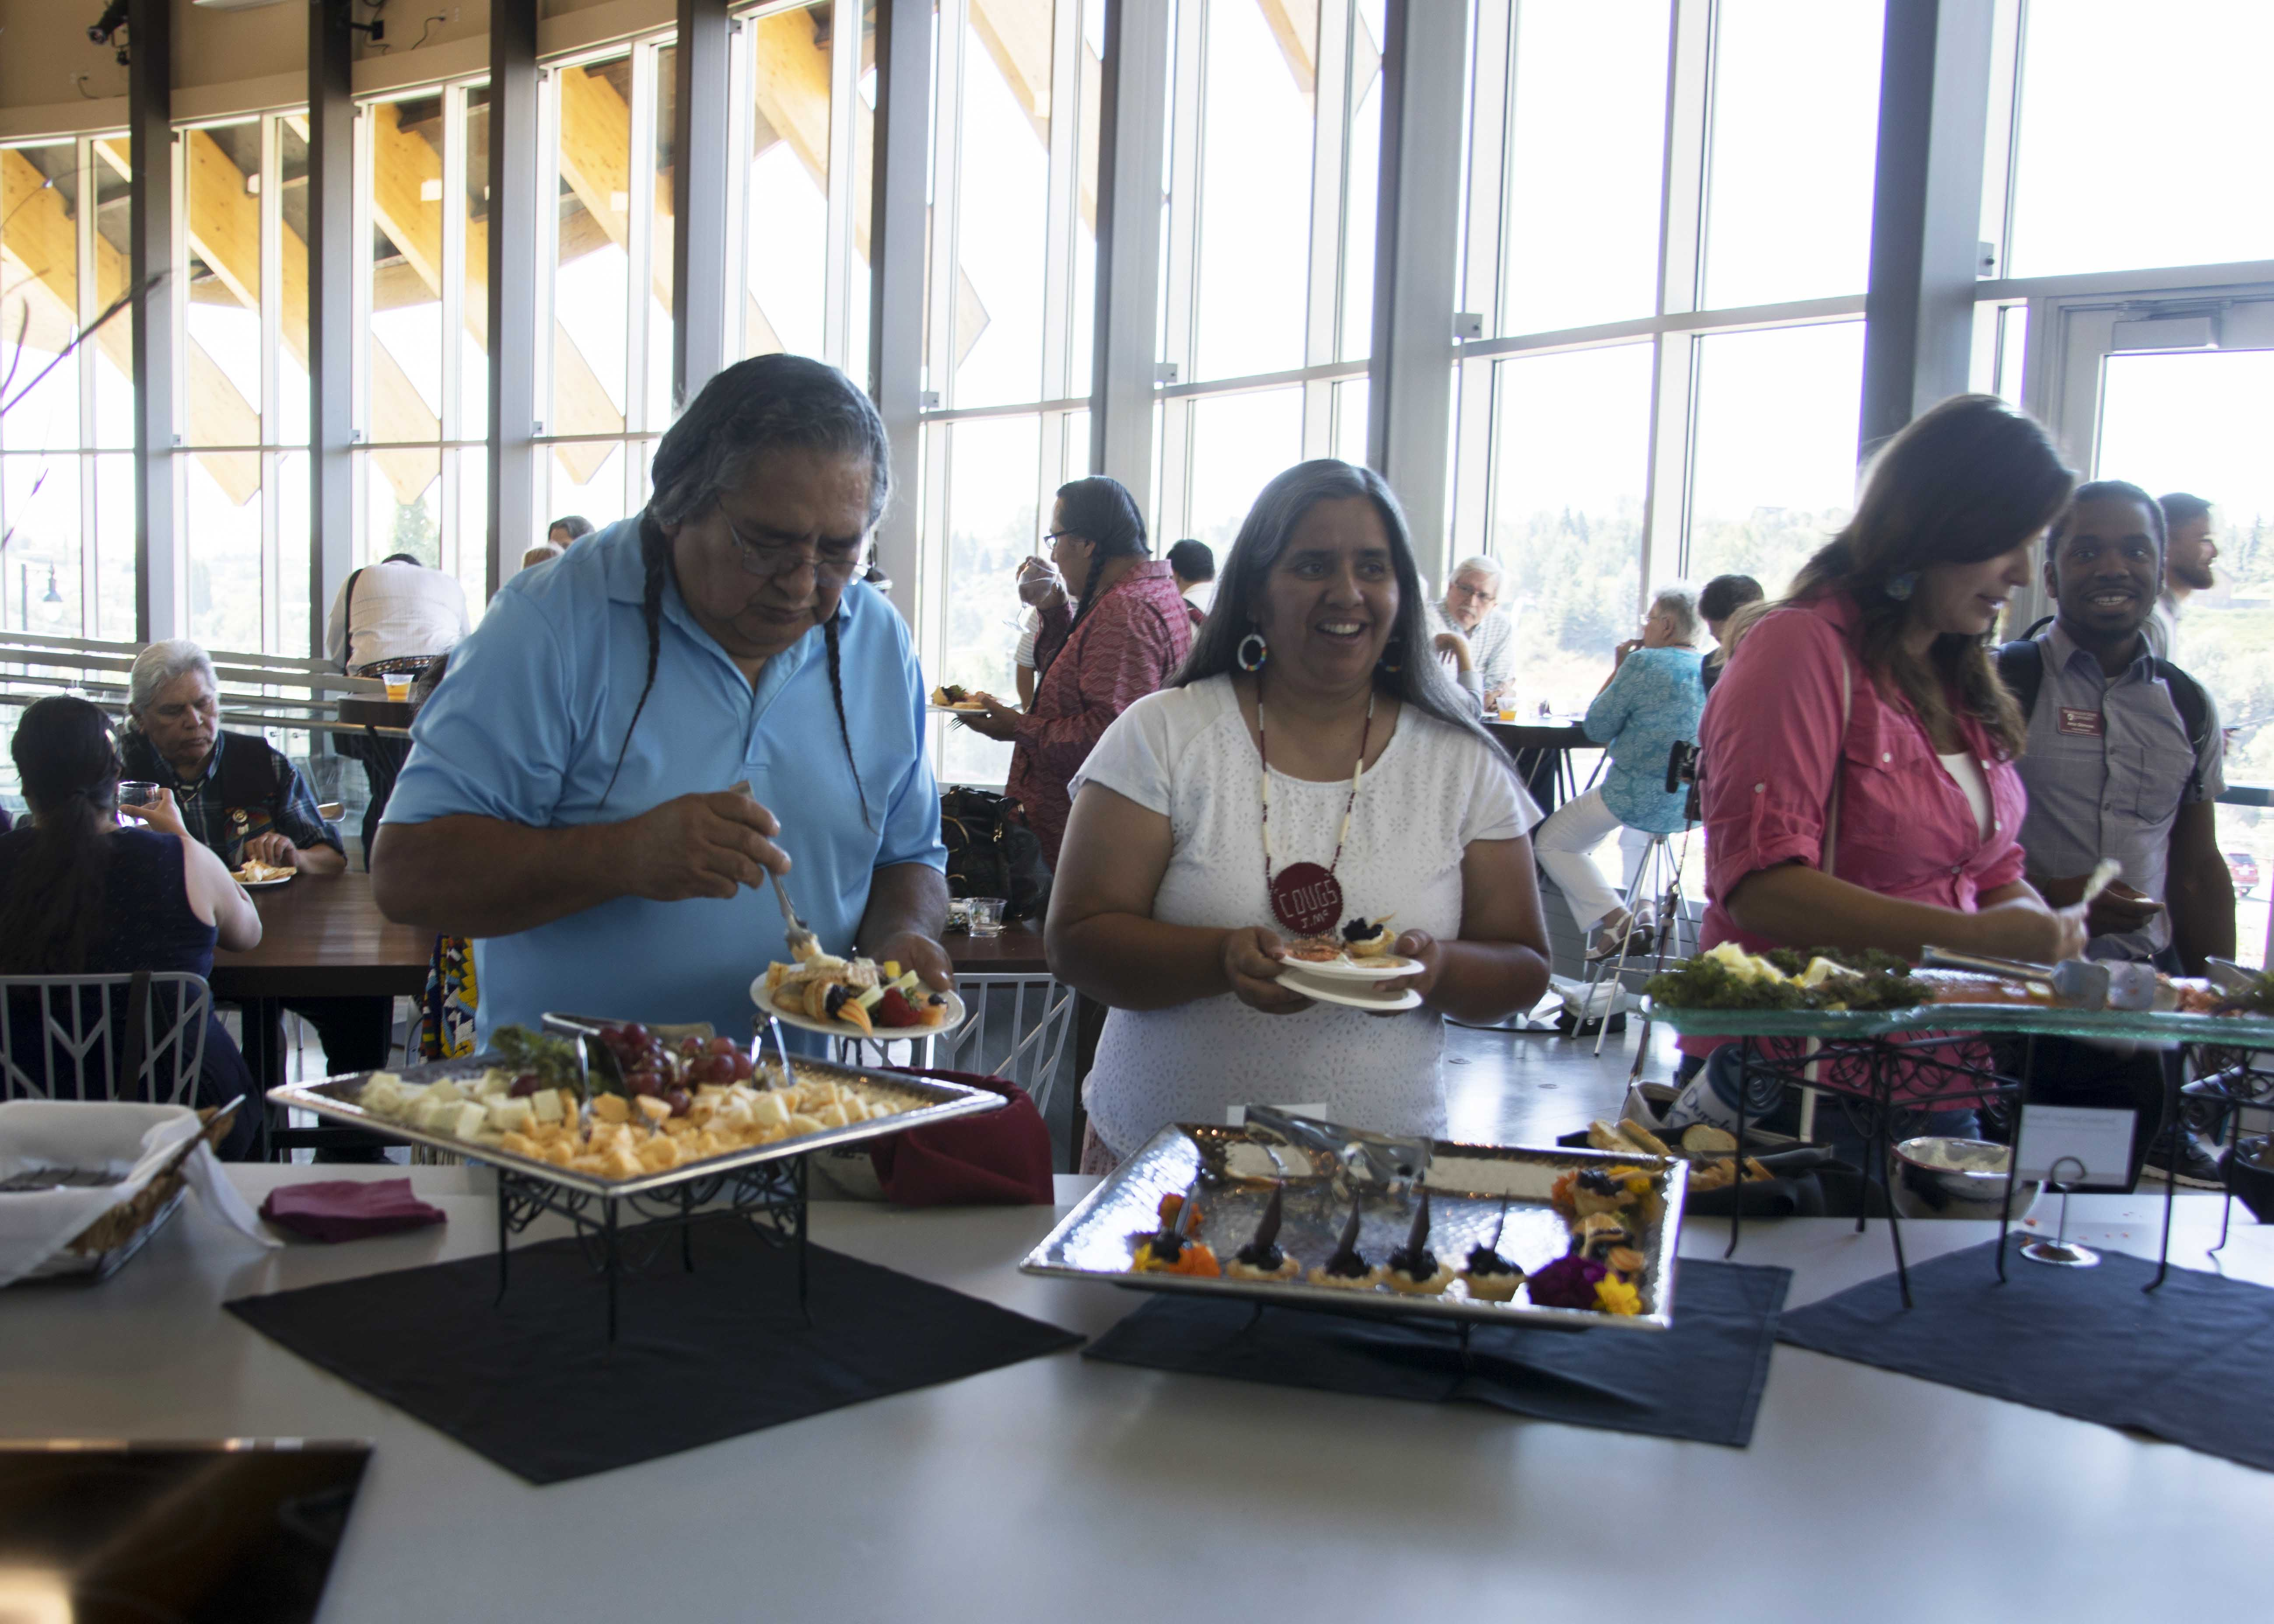 Guests enjoying light refreshments in the Cultural Center kitchen area.